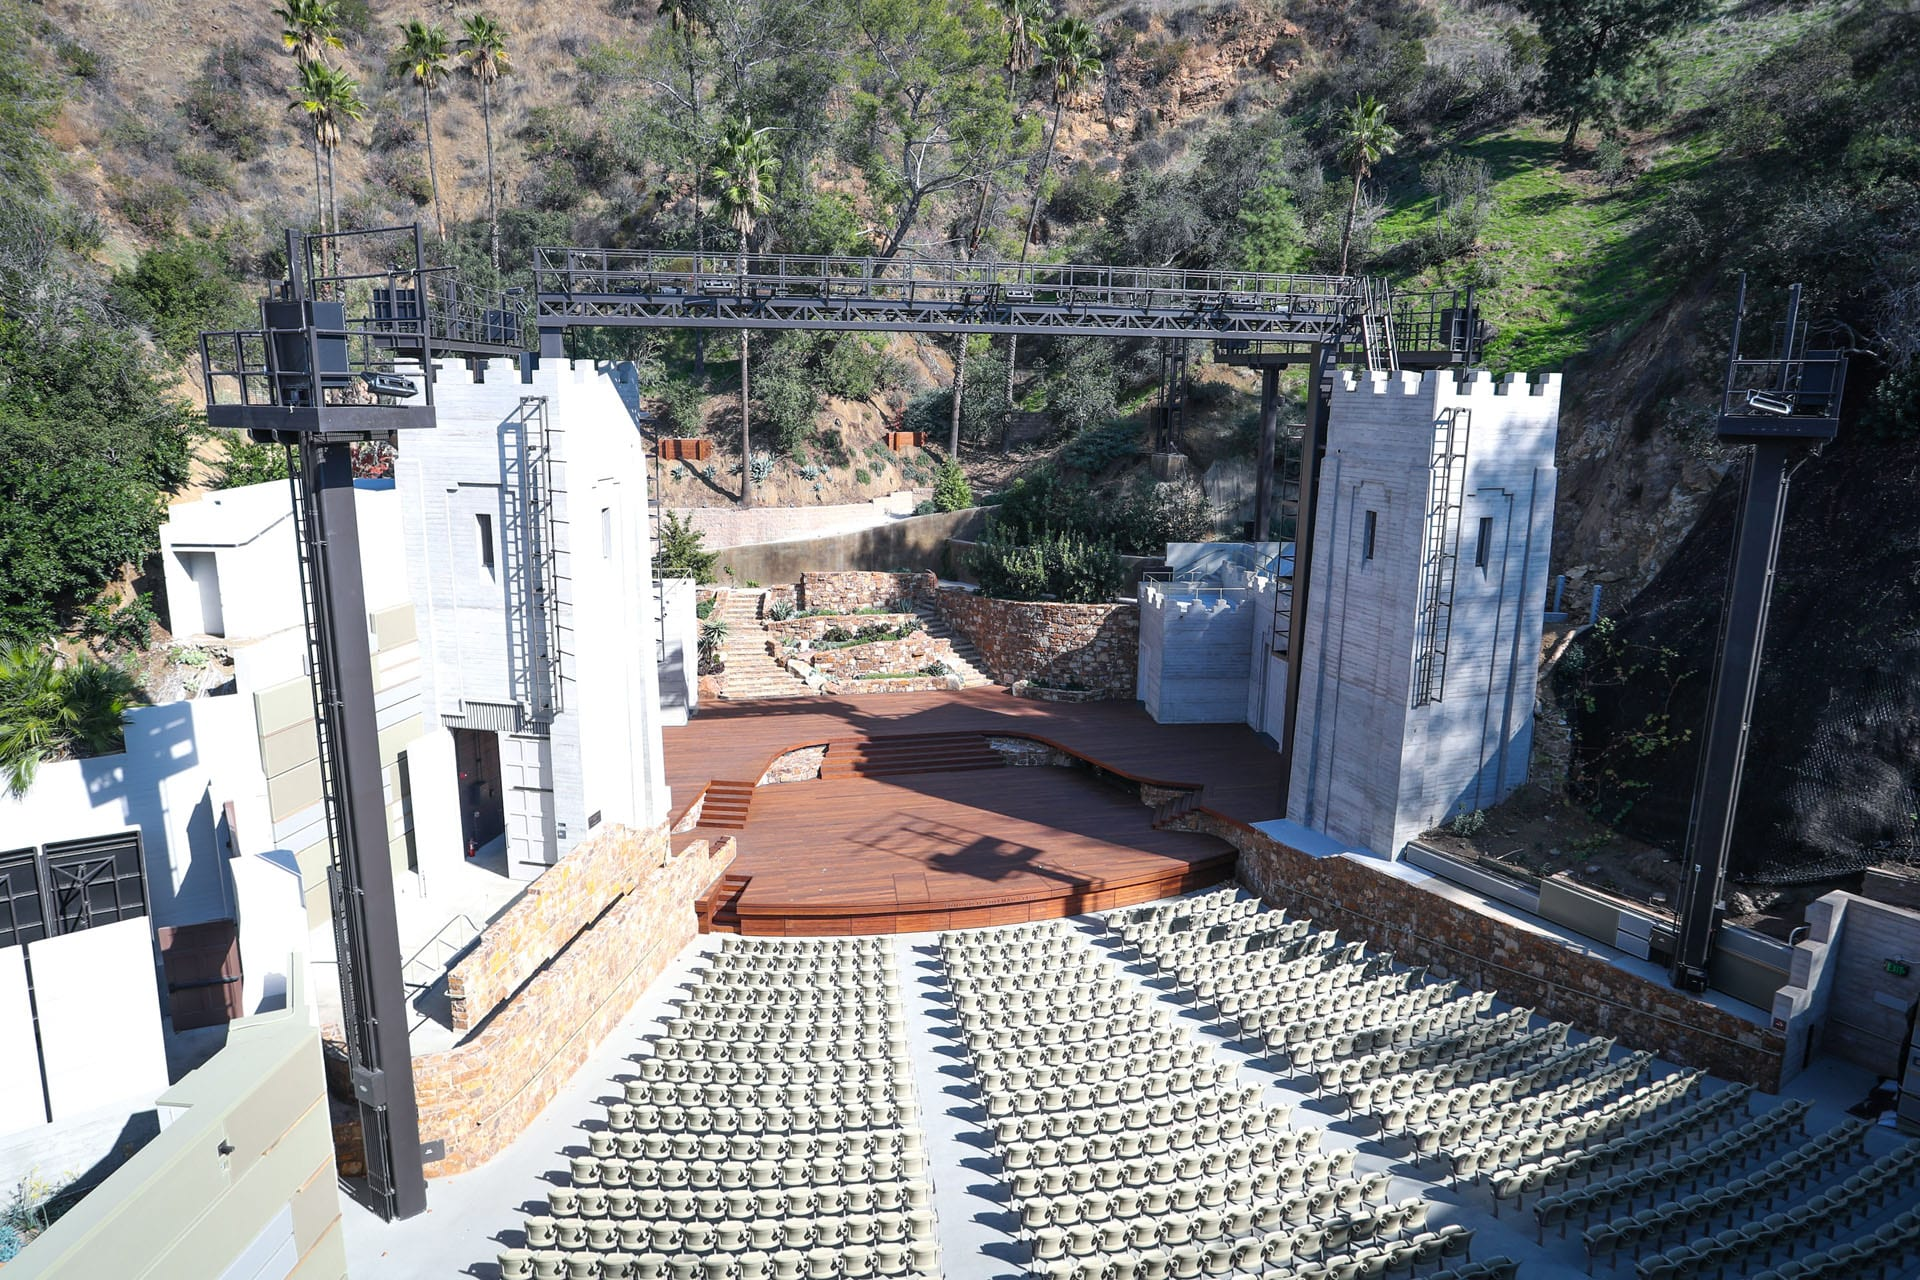 Amphitheater view from high seats